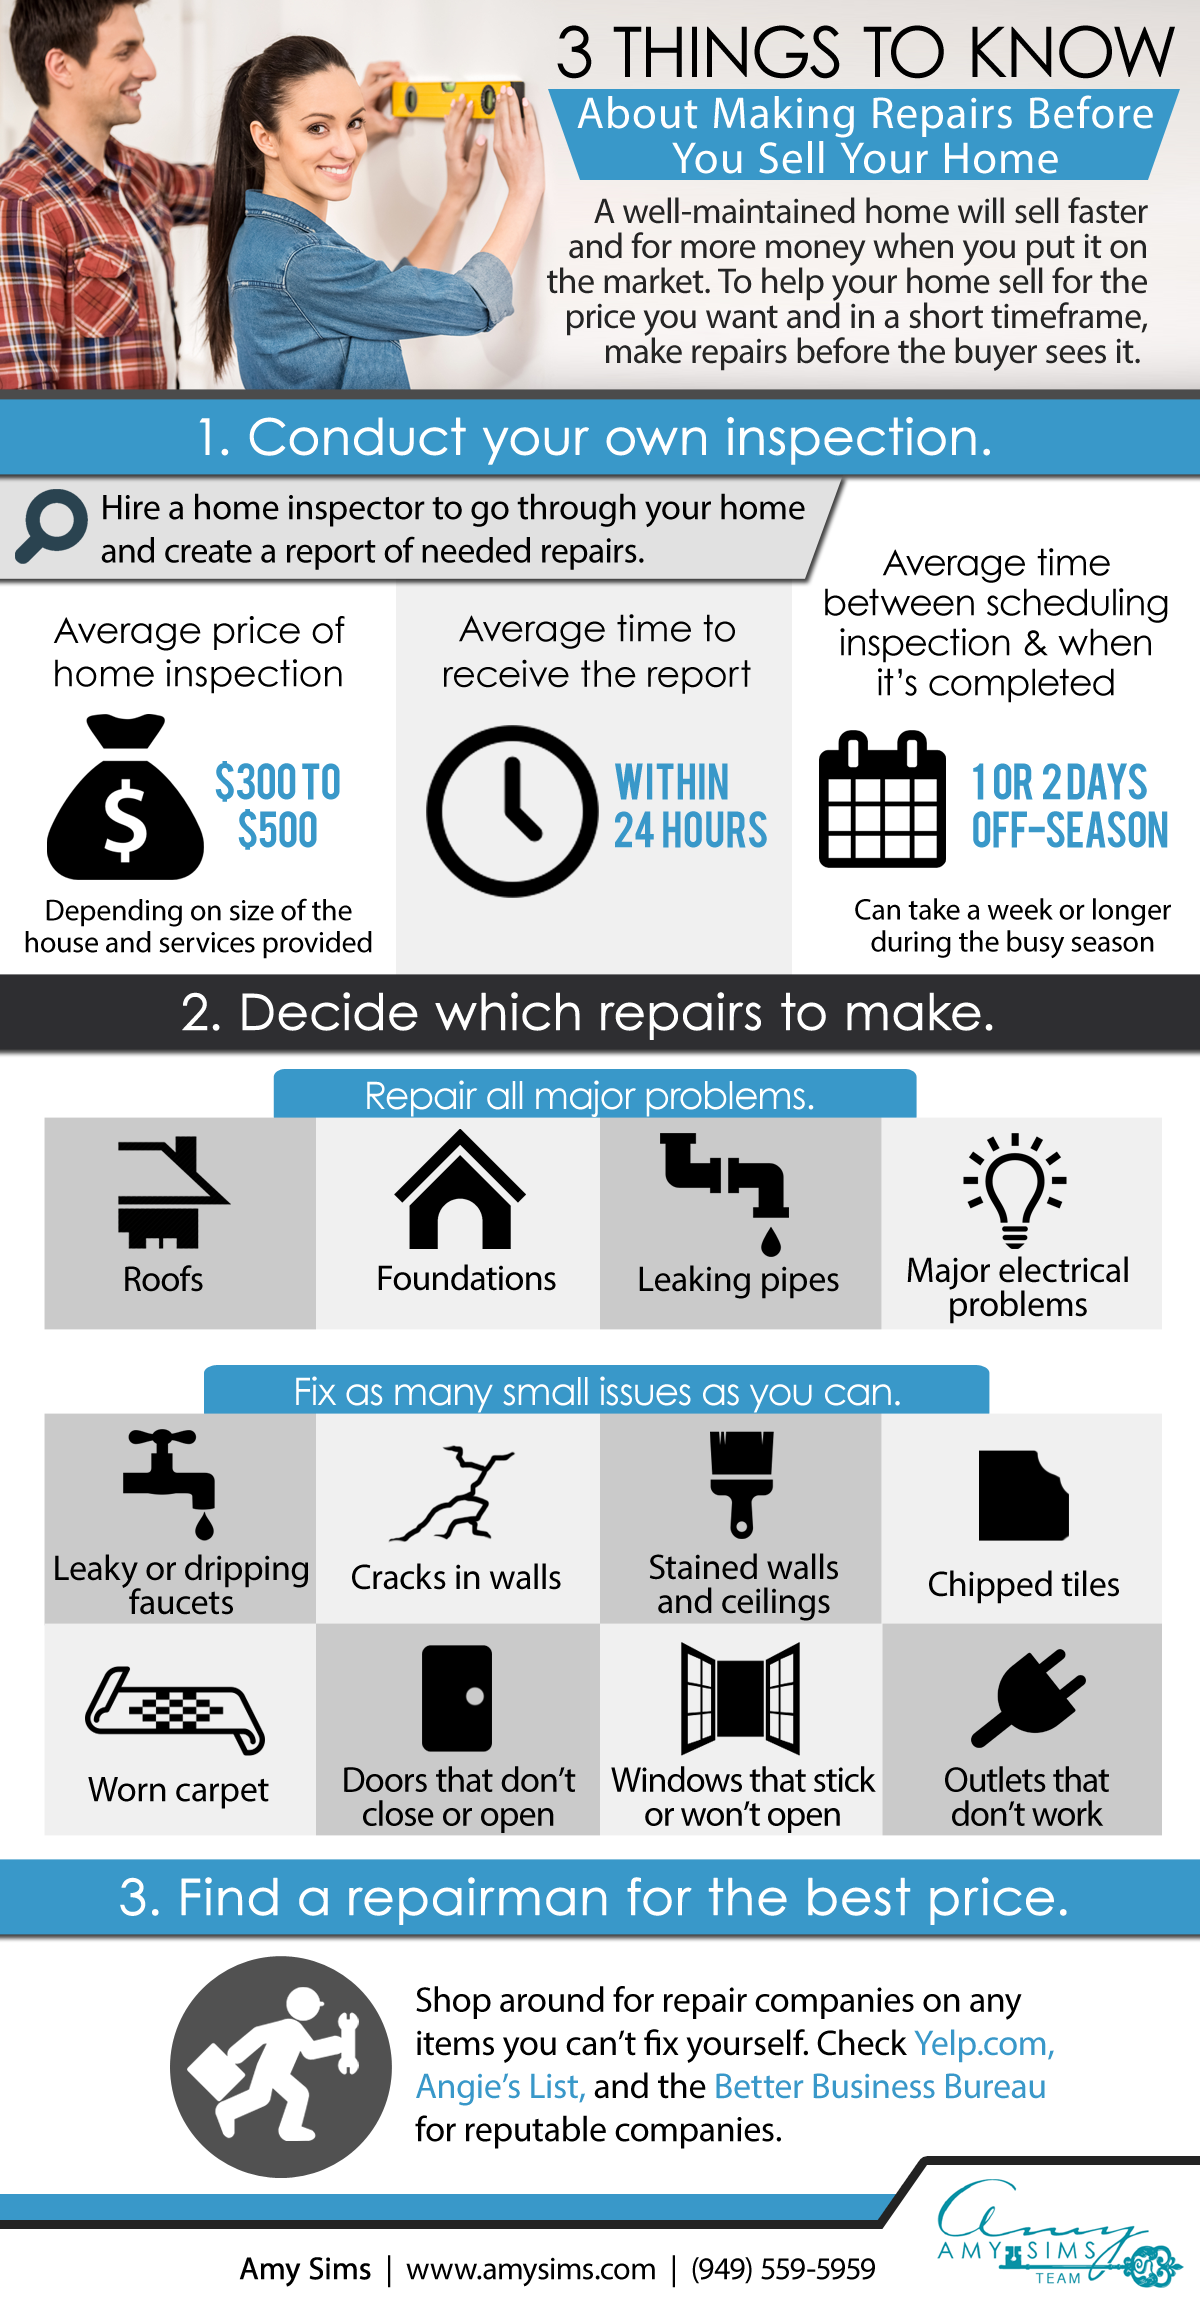 3 Things to Know about Making Repairs Image